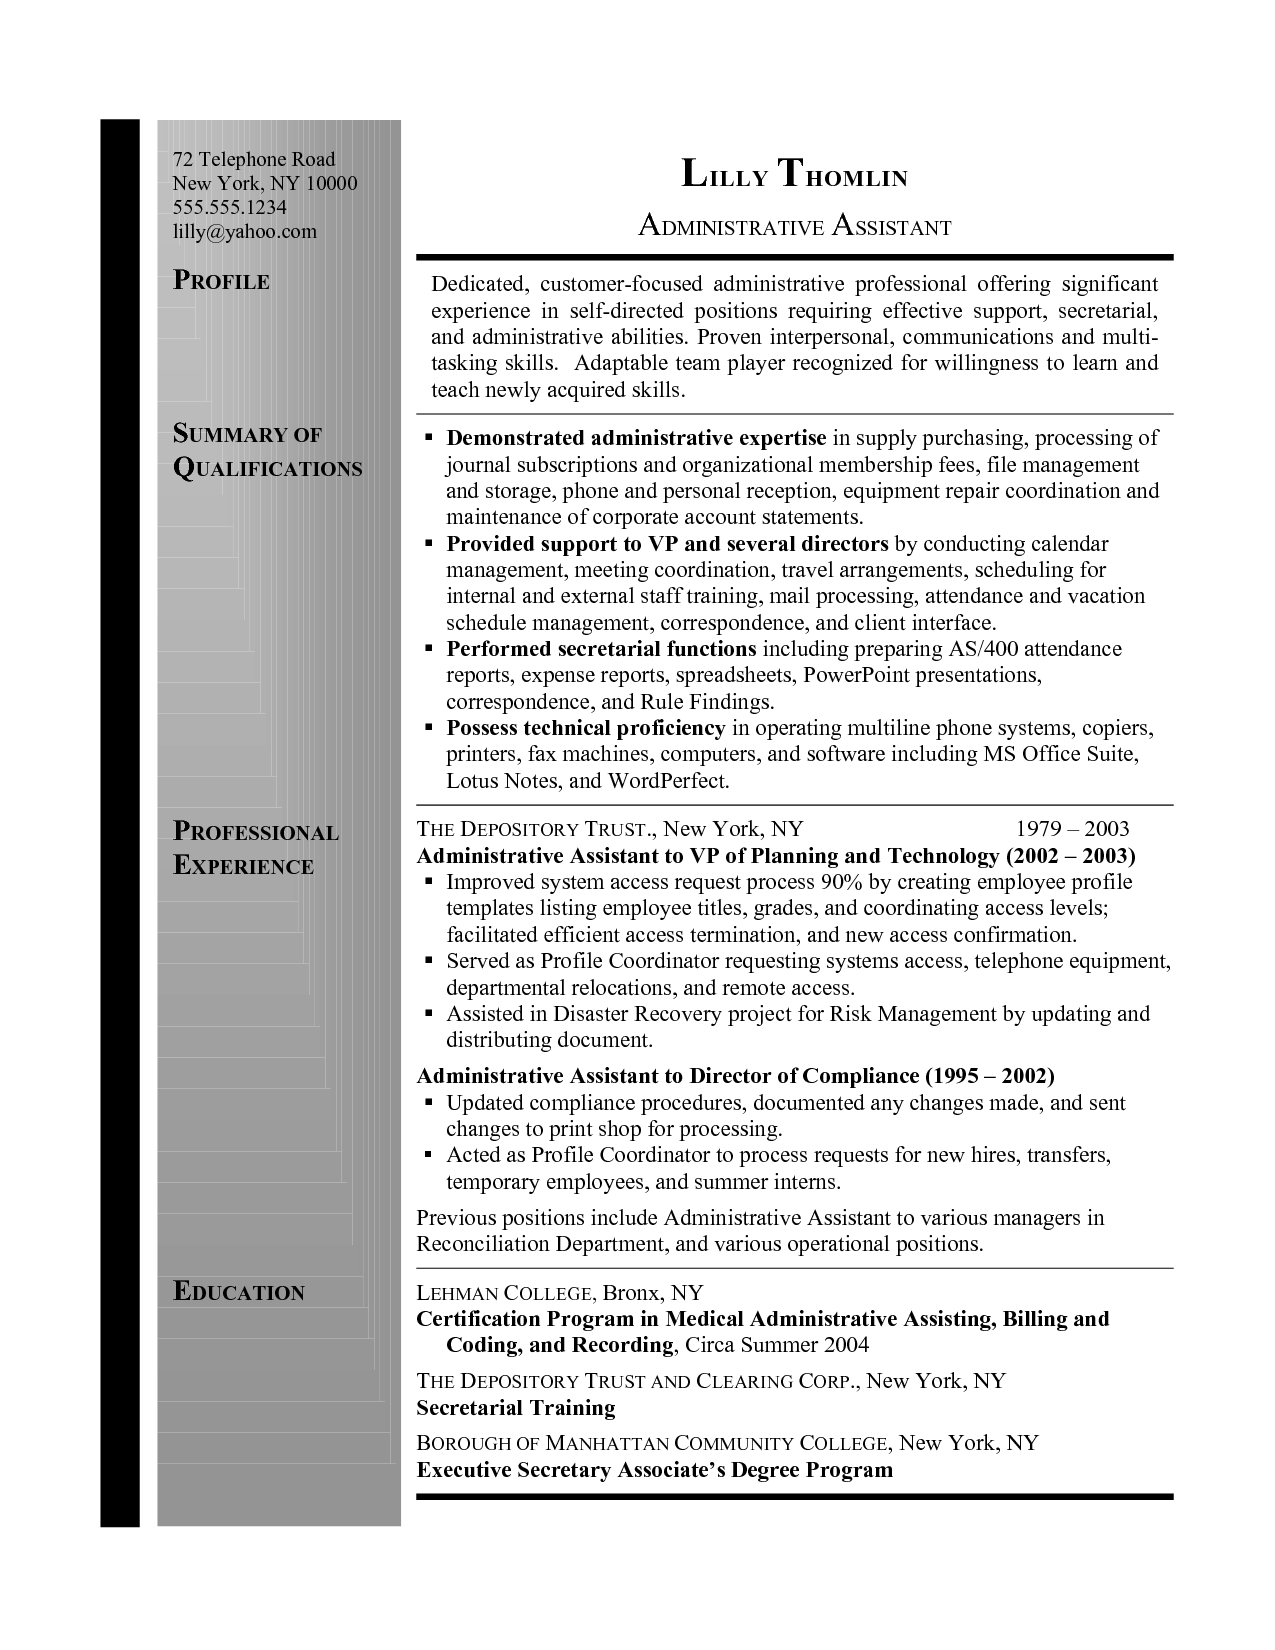 resume summary administrative assistant resume info sample